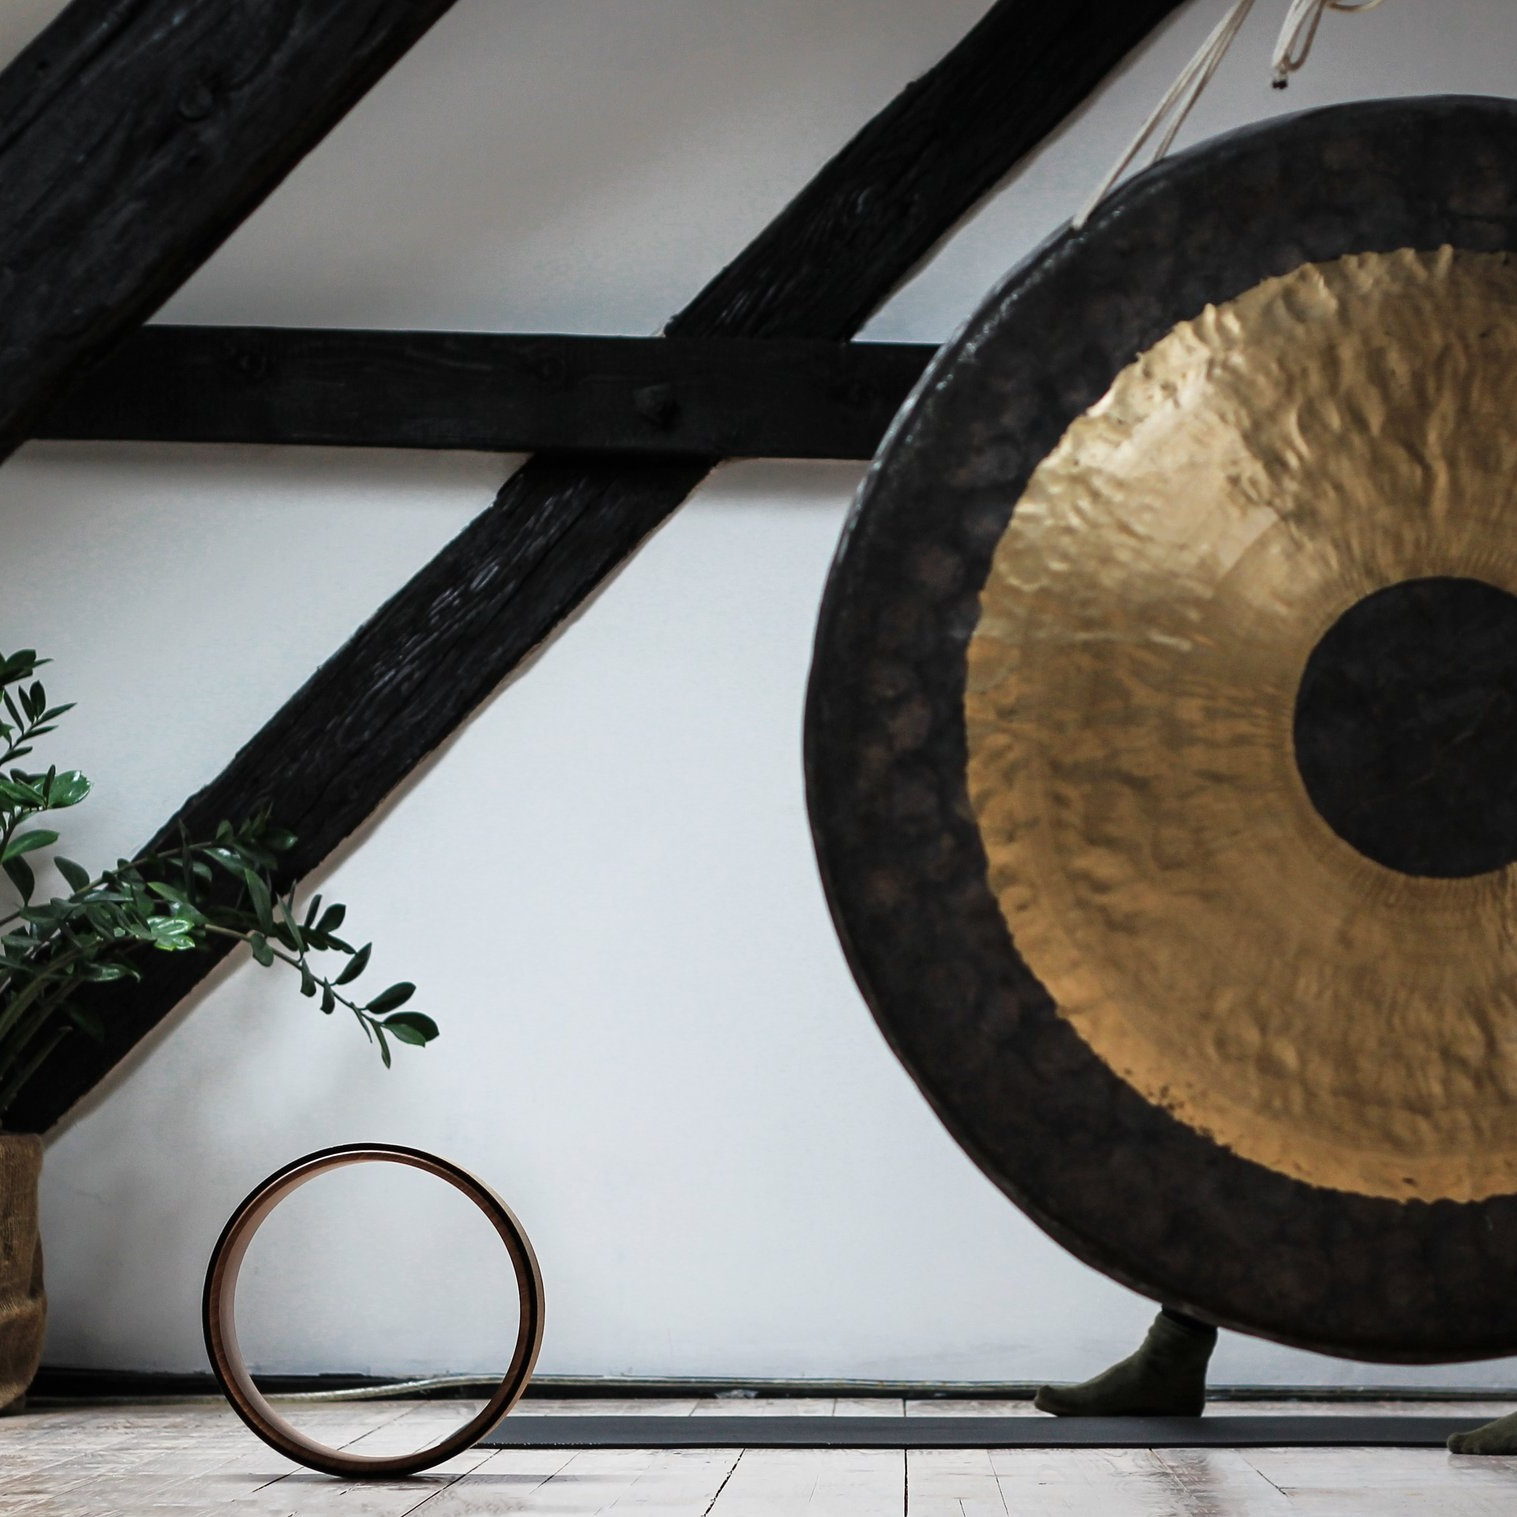 sound healing gong bath - On Saturday evening we will dive deeper into a serene, tranquil space of inner peace with a sound healing gong bath.The sound of gong has a profound effect on people with most having the experience of floating in space, or in an ocean. Sound healing is one of the oldest and most ancient forms of healing dating back thousands of years.